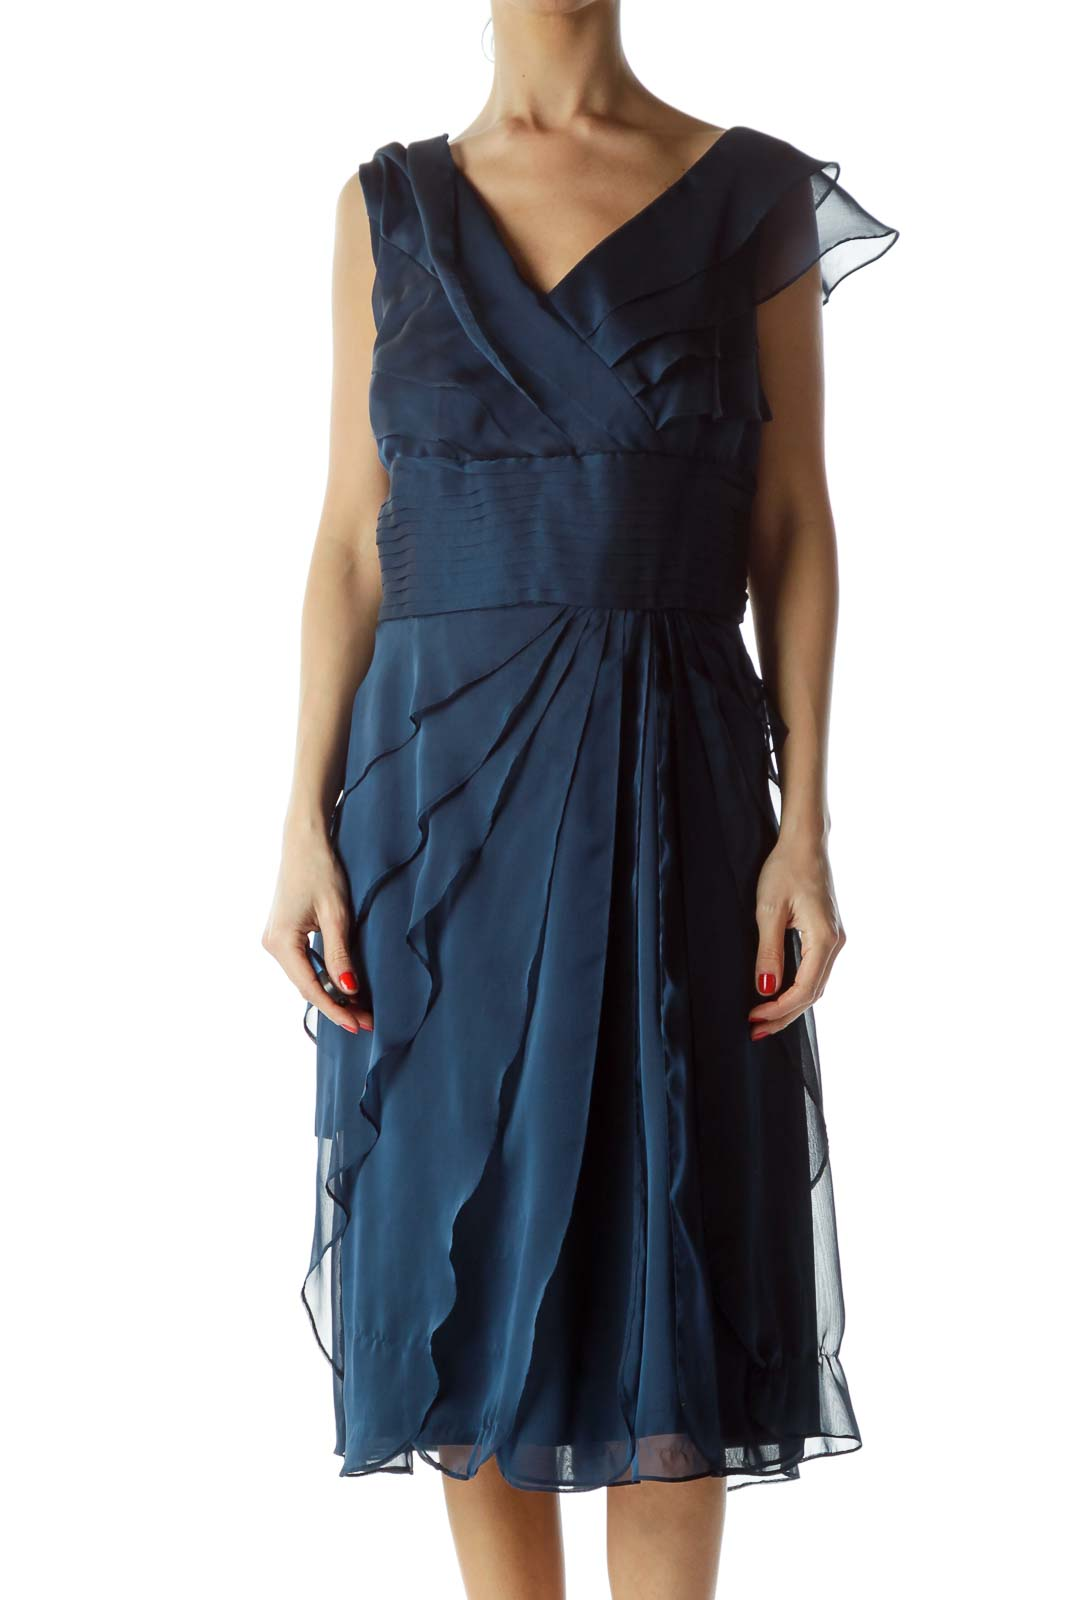 Blue Ruffled Cocktail Dress Front